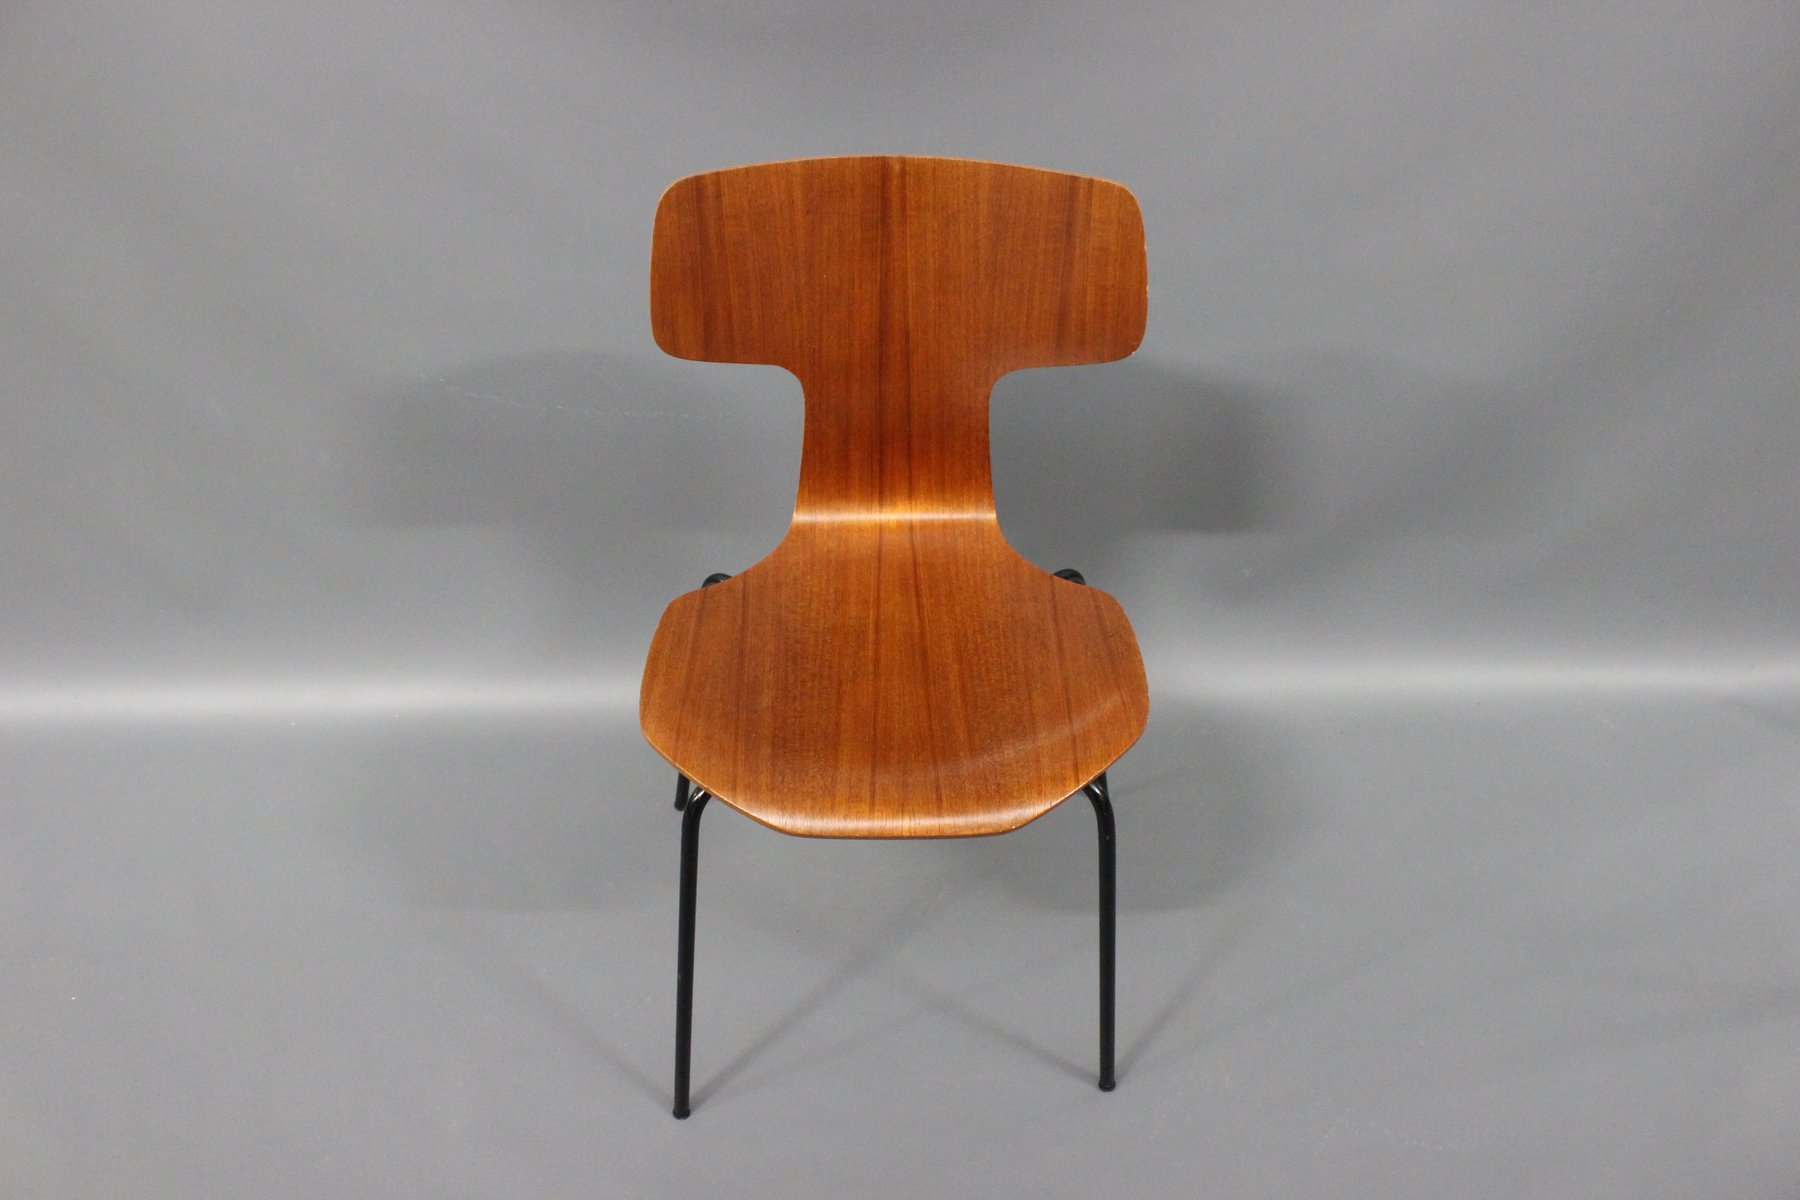 teak stuhl modell 3103 von arne jacobsen f r fritz hansen. Black Bedroom Furniture Sets. Home Design Ideas